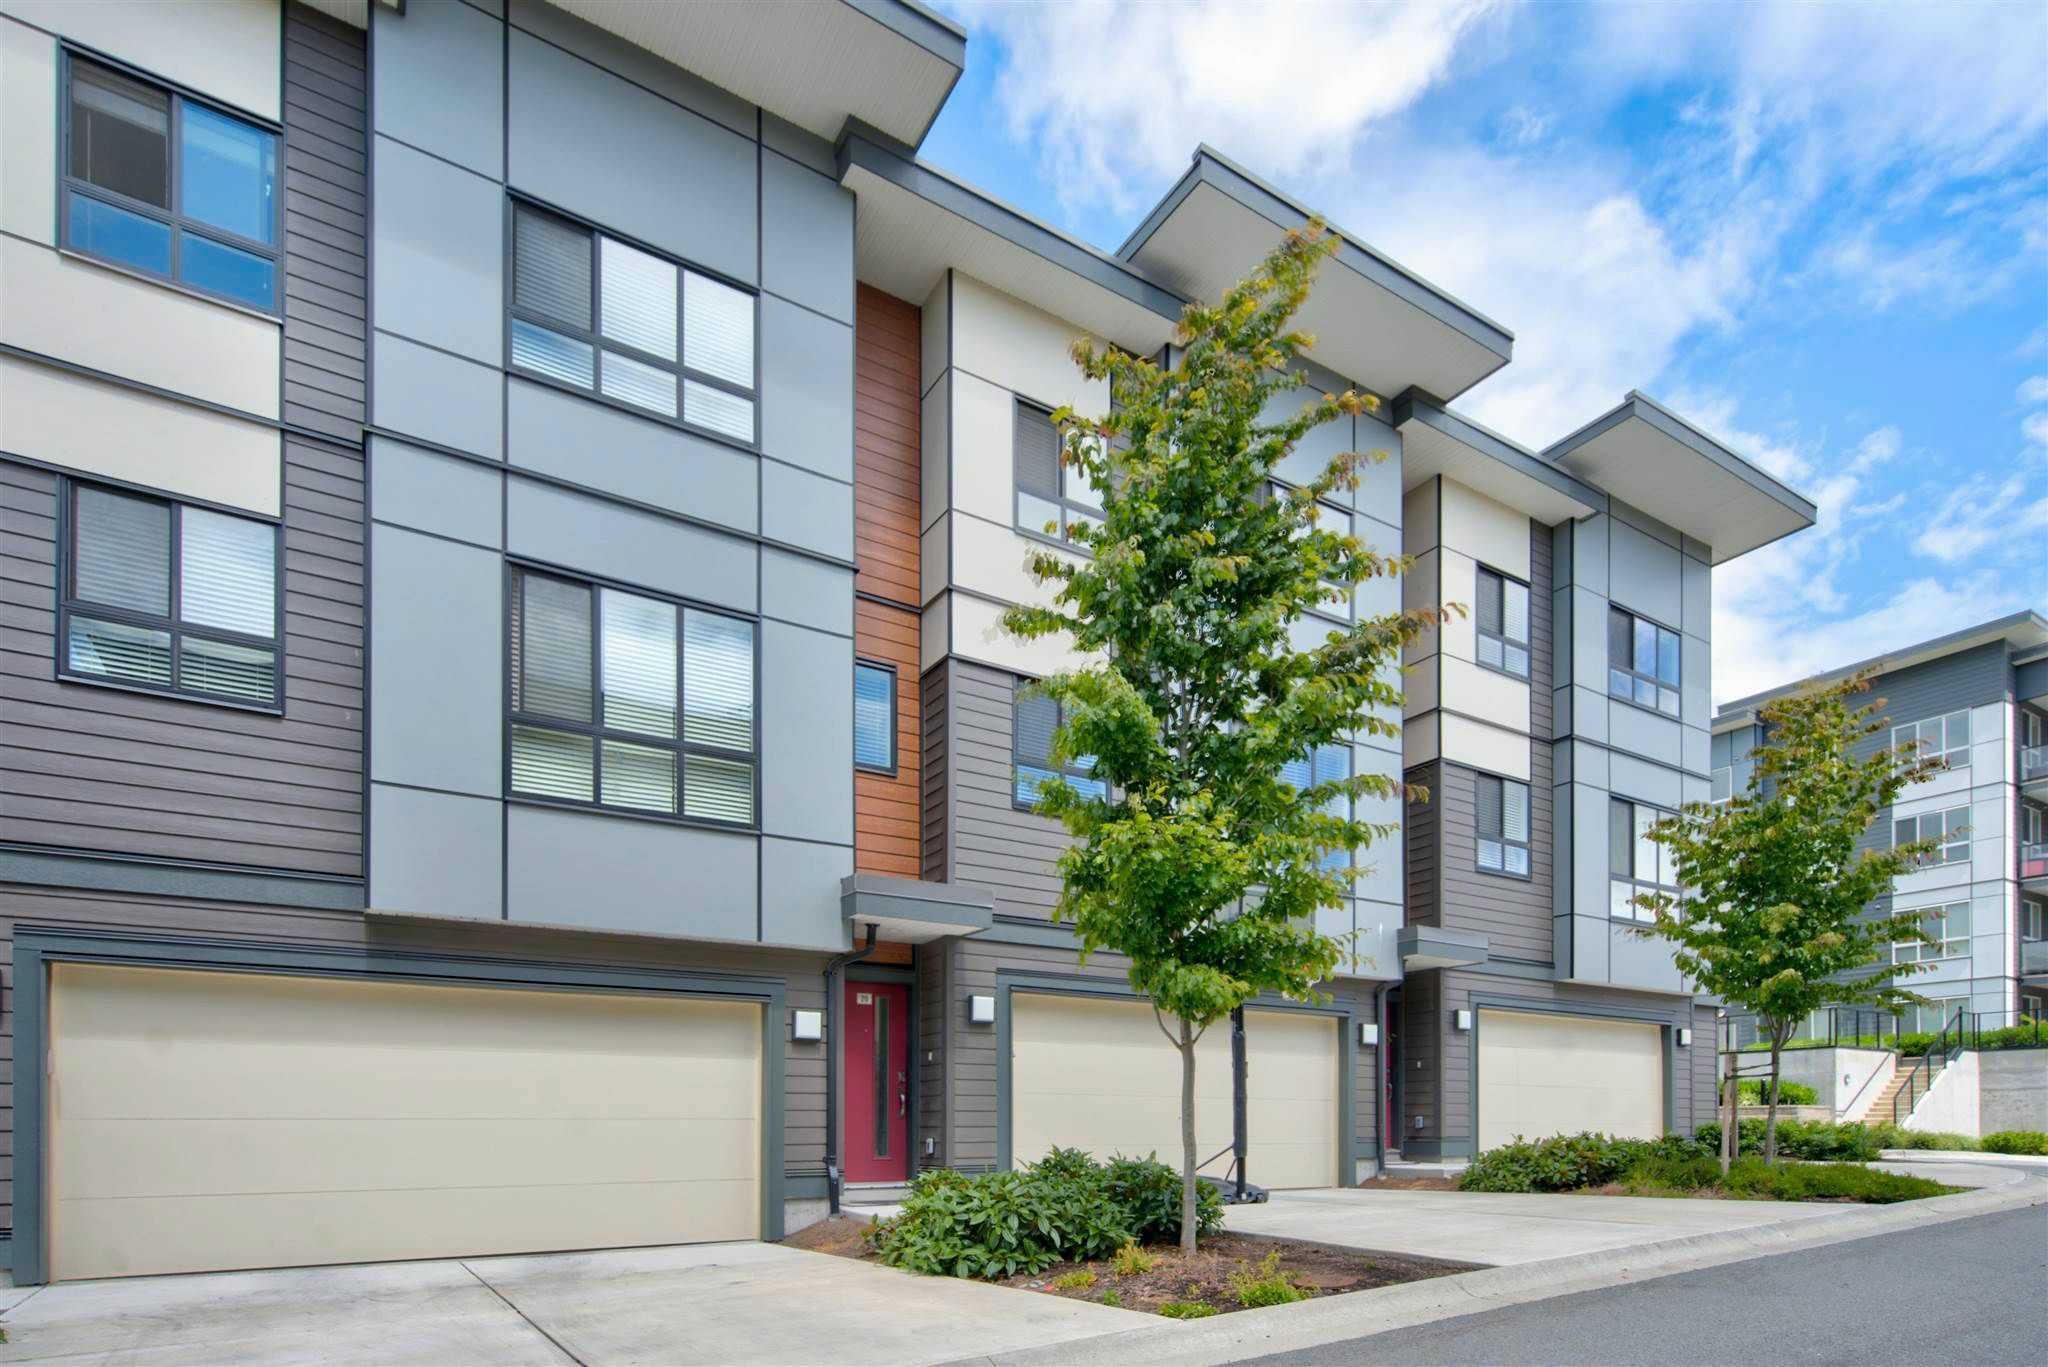 Main Photo: 20 1938 NORTH PARALLEL Road in Abbotsford: Abbotsford East Townhouse for sale : MLS®# R2604253